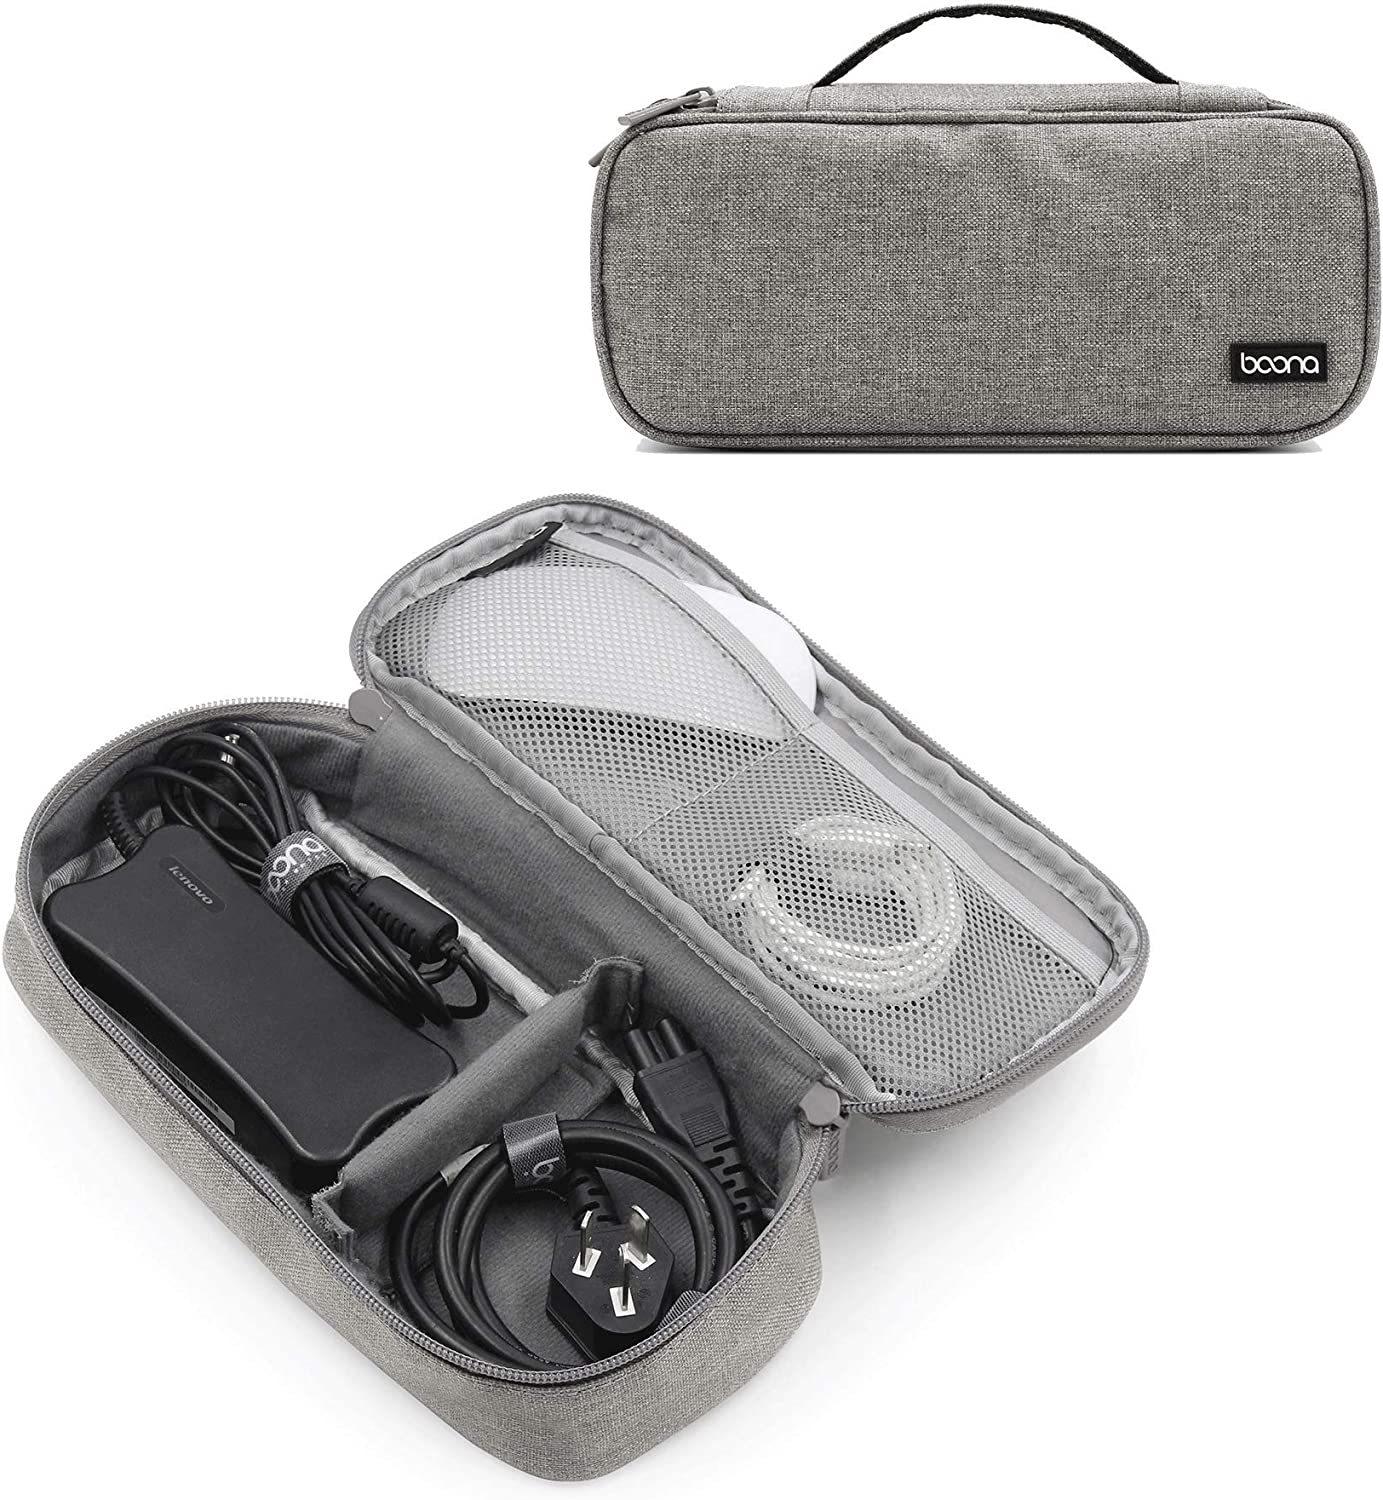 BOONA Laptop AC Adapter Charger Cable Storage Bag Shockproof Waterproof Travel Organizer for Power Cord, Mouse Line and Other Accessories,Single Layer (Gray)